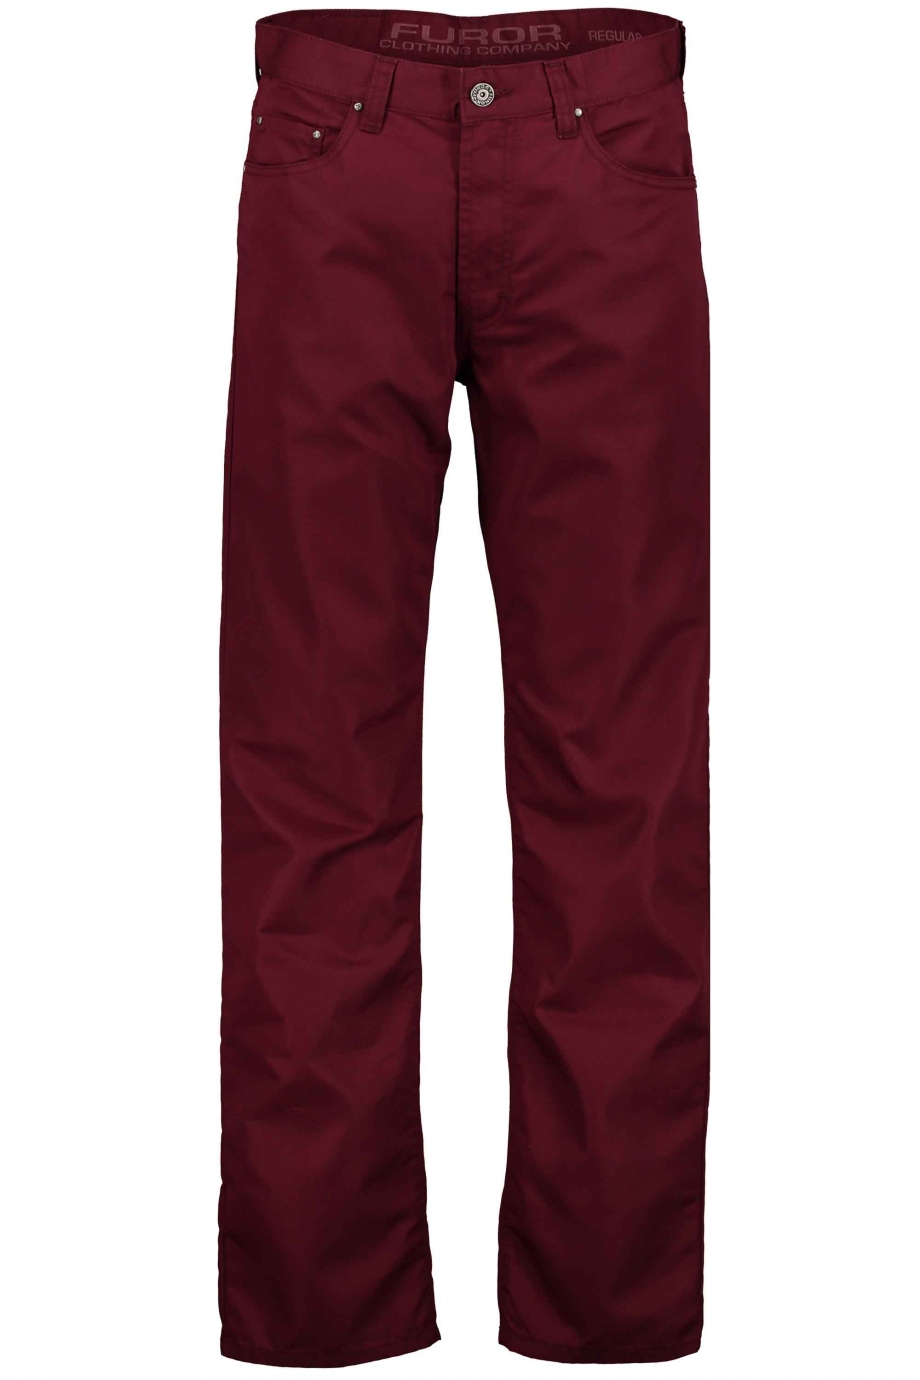 Pantalón recto color vino Modelo Maverick